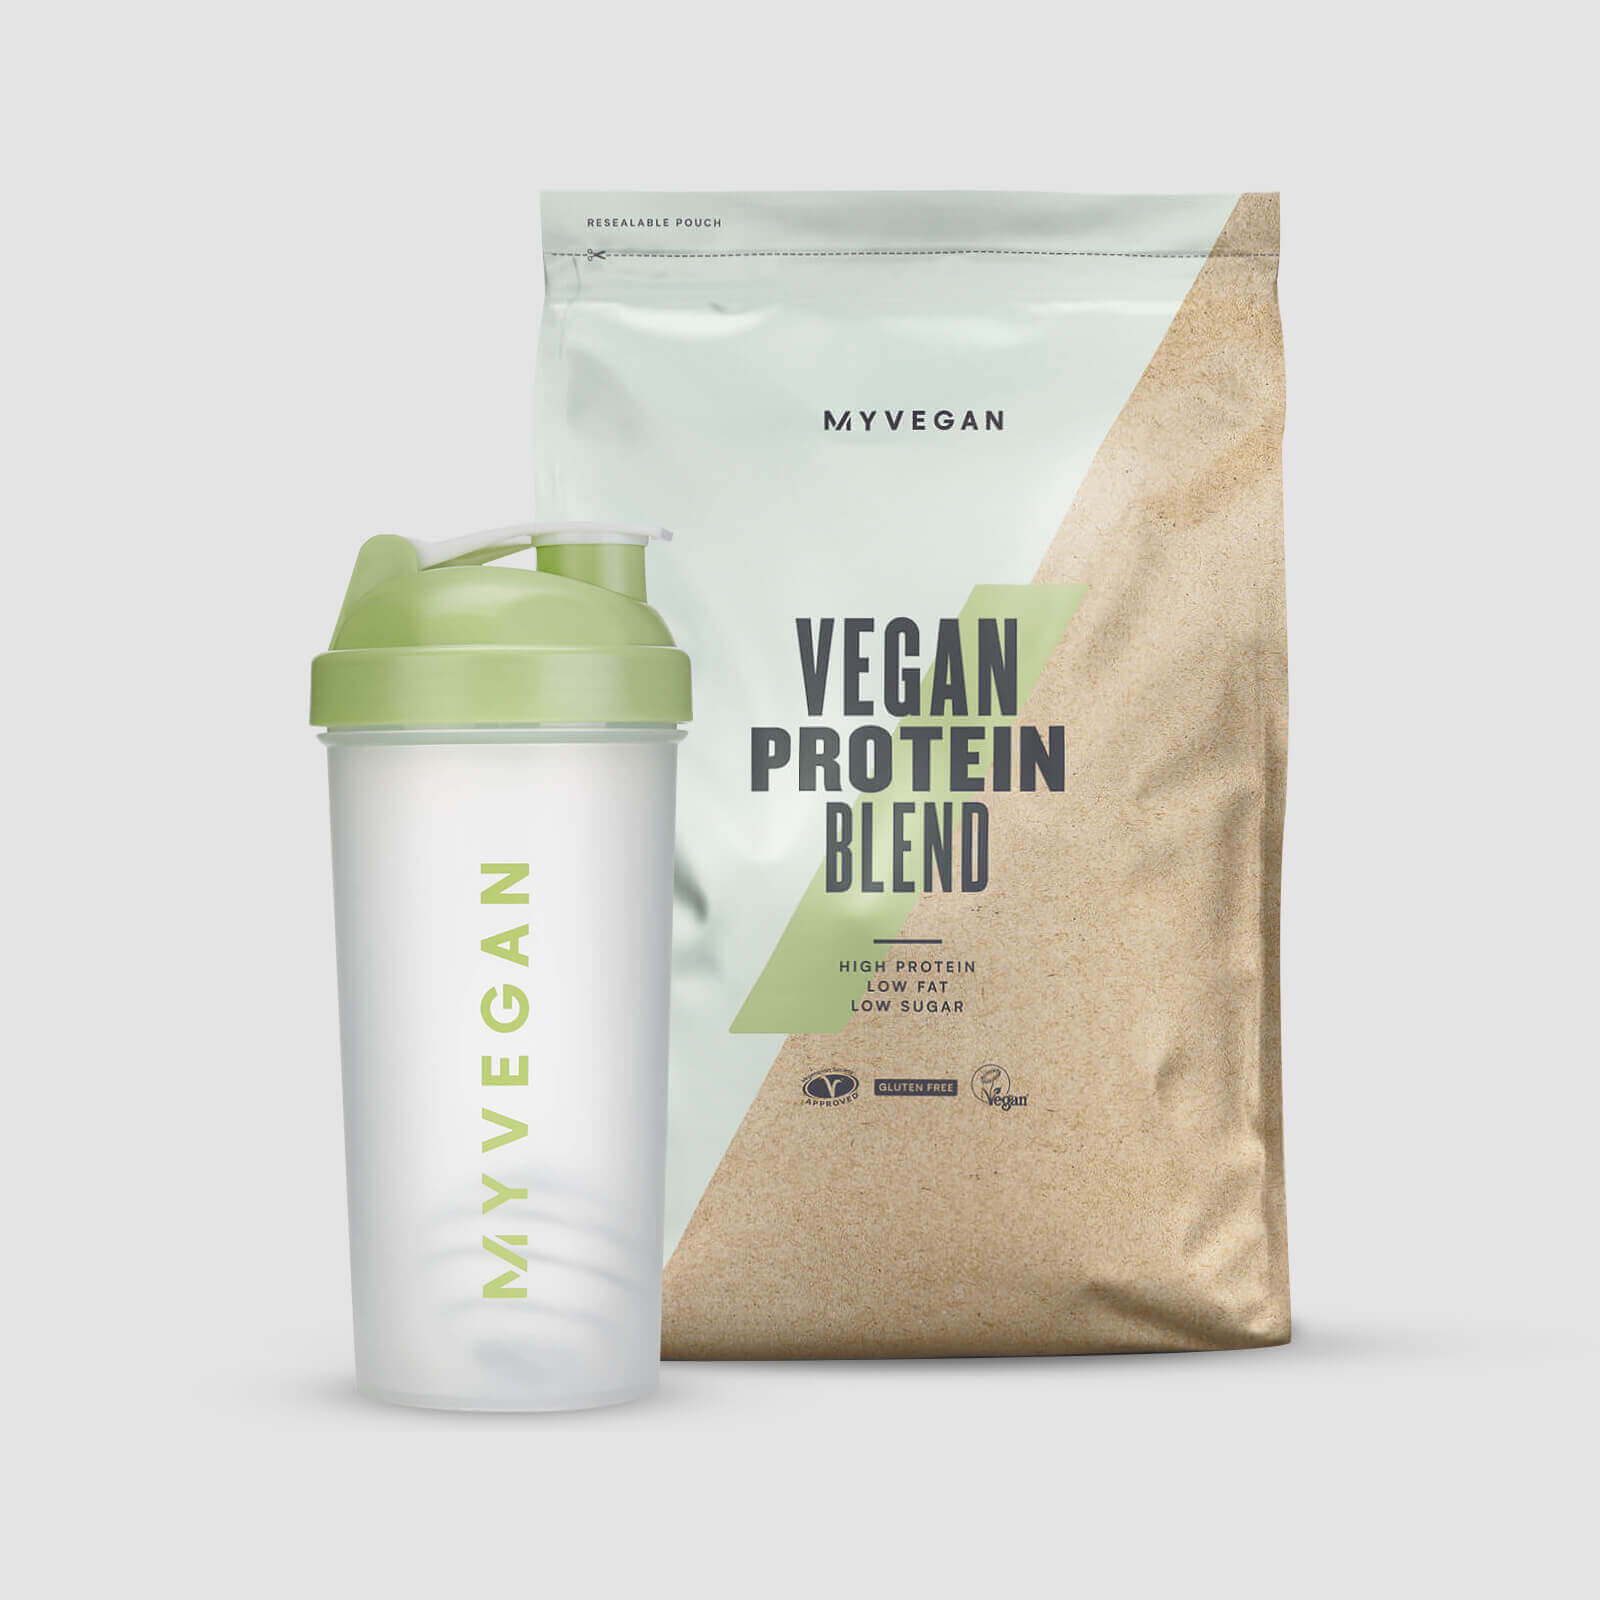 Myvegan Protein Blend Starter Pack available in 3 flavours. Get up to 60% off using the Extra 25% Discount code on Site.